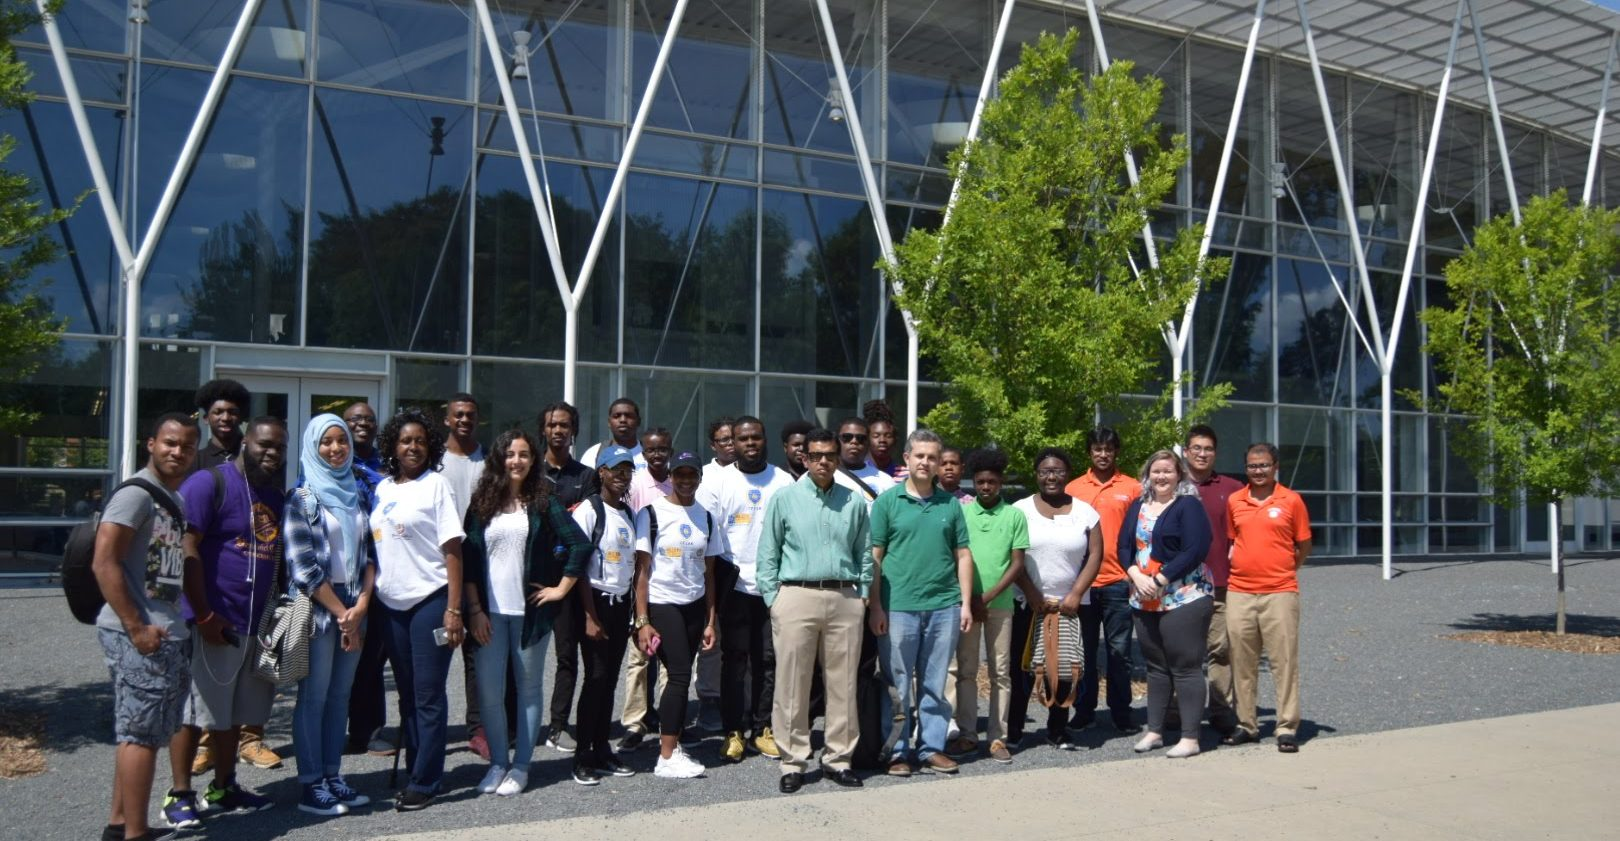 C²M² representatives with all of the STI students in front of the Engineering Inovation Building